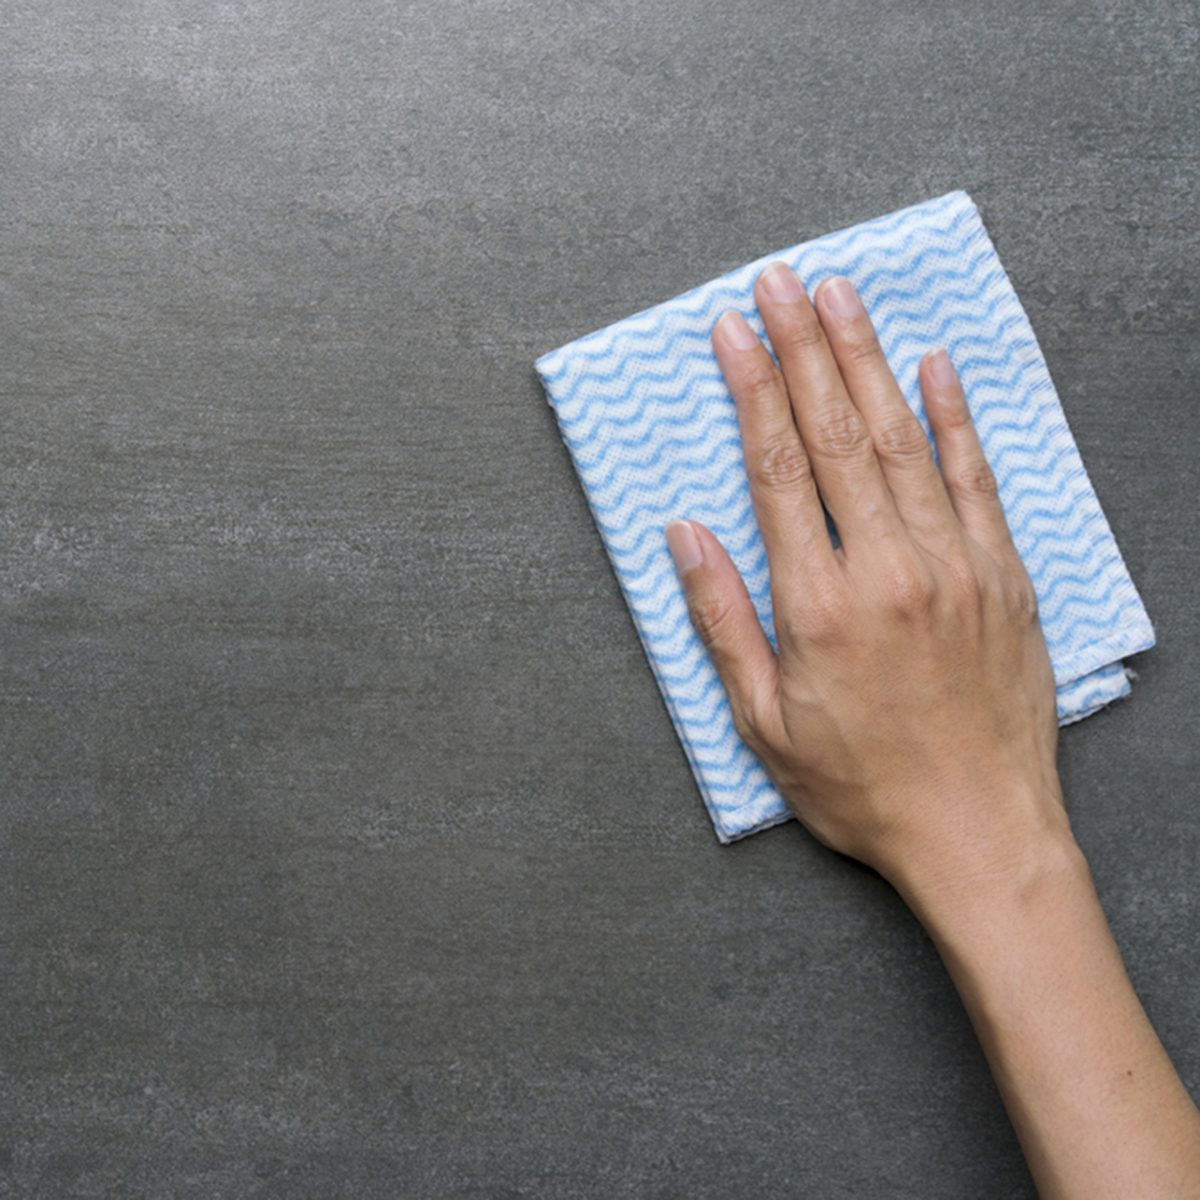 Cleaning black table by woman hand; Shutterstock ID 669645112; Job (TFH, TOH, RD, BNB, CWM, CM): TOH